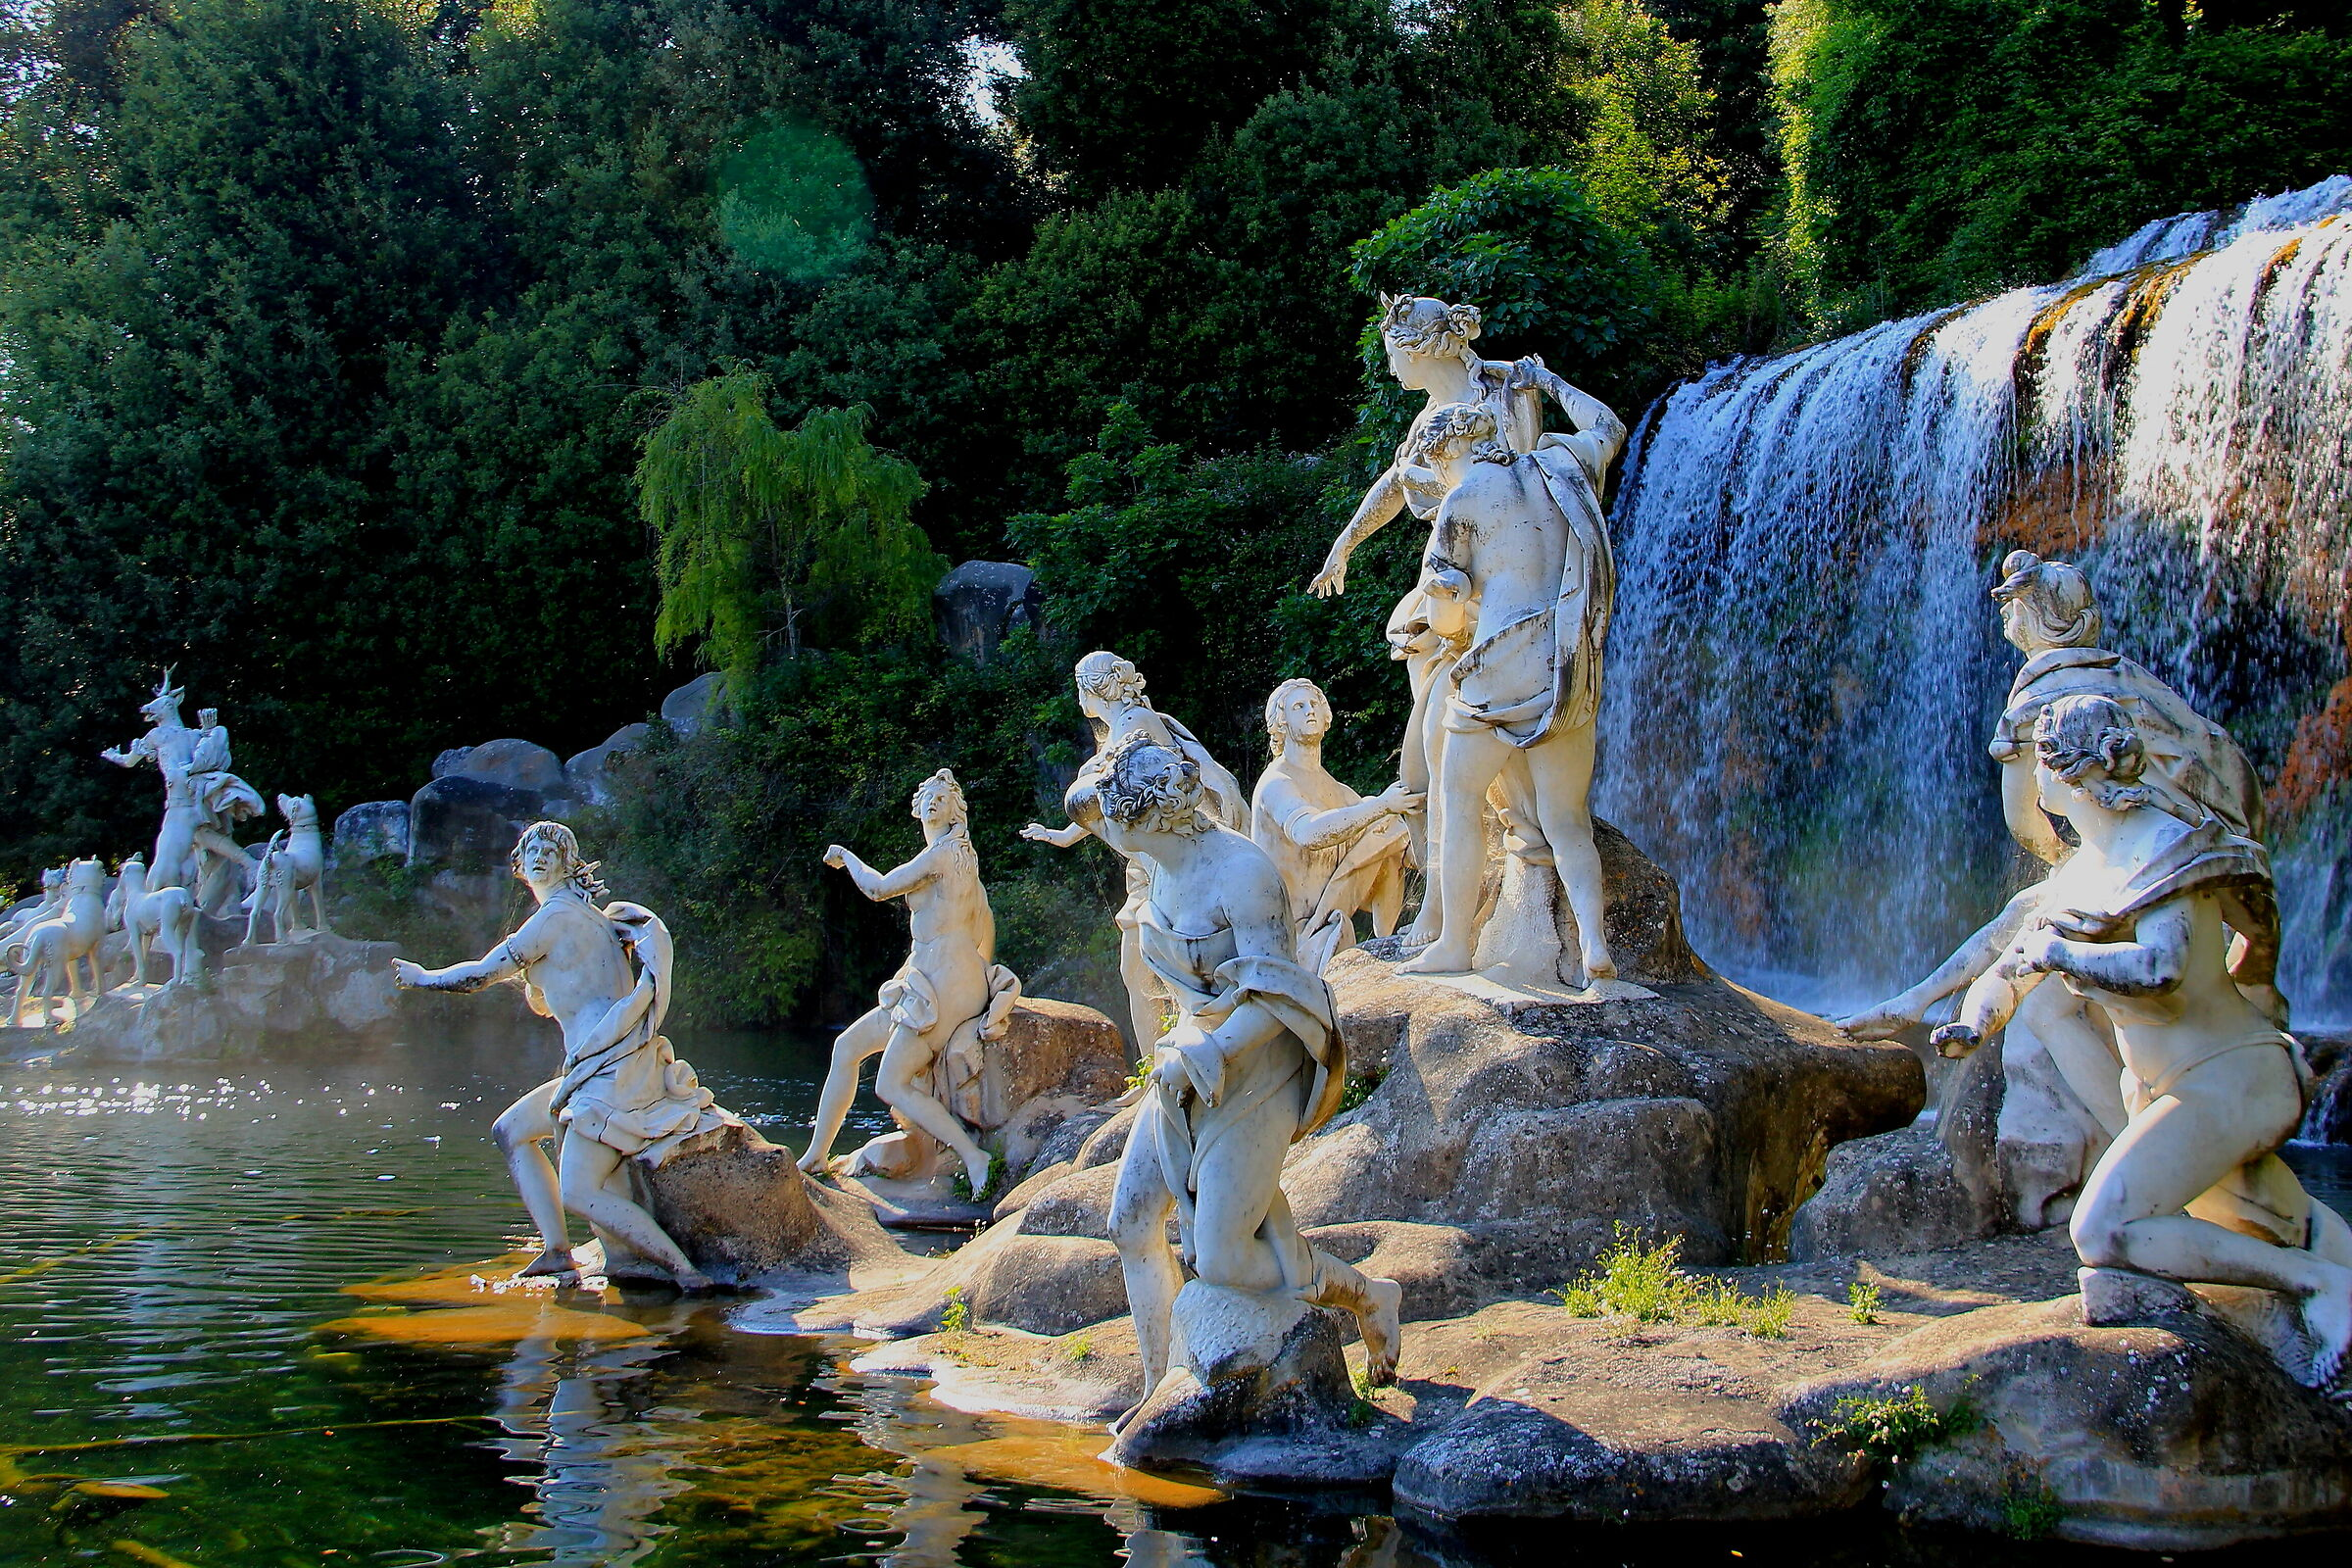 Caserta. The Fountain of Diana and Actaeon...